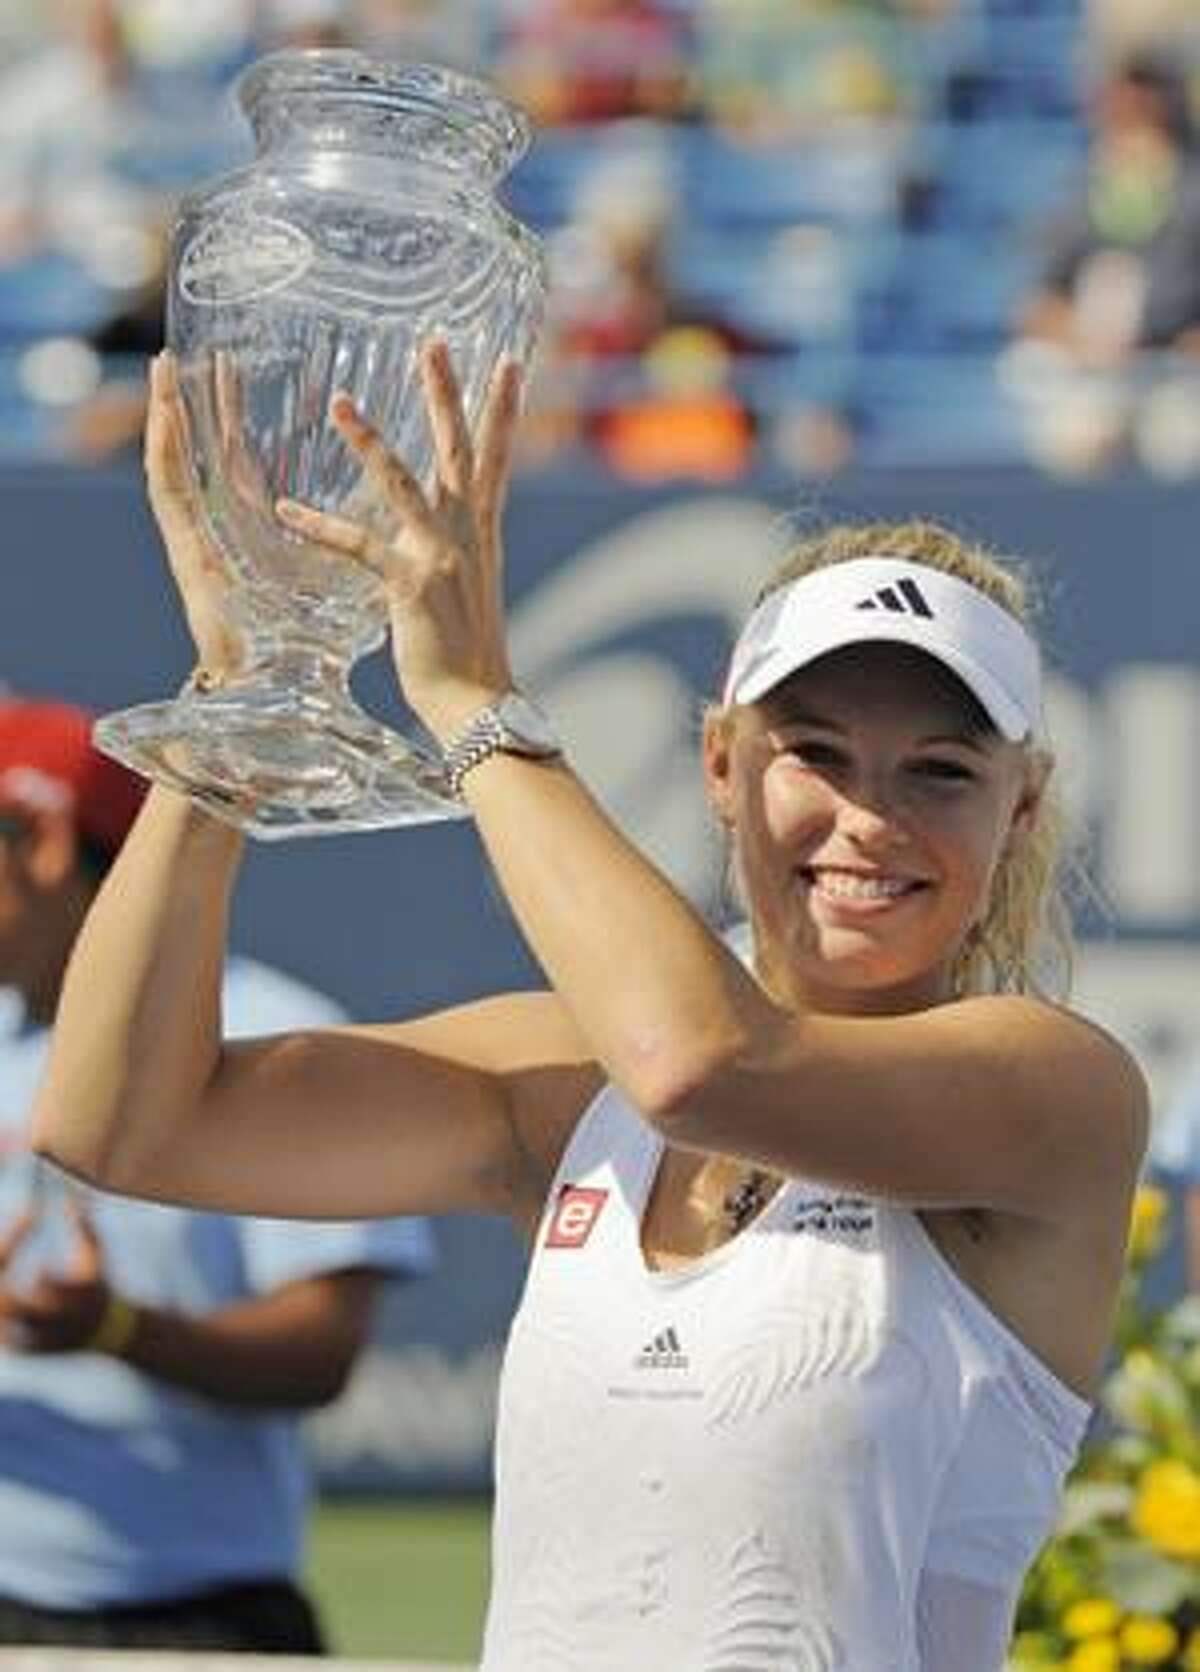 AP Caroline Wozniacki, of Denmark, lifts her trophy after defeating Nadia Petrova, of Russia, 6-3, 3-6, 6-3, in the women's final of the Pilot Pen tennis tournament in New Haven, on Saturday.